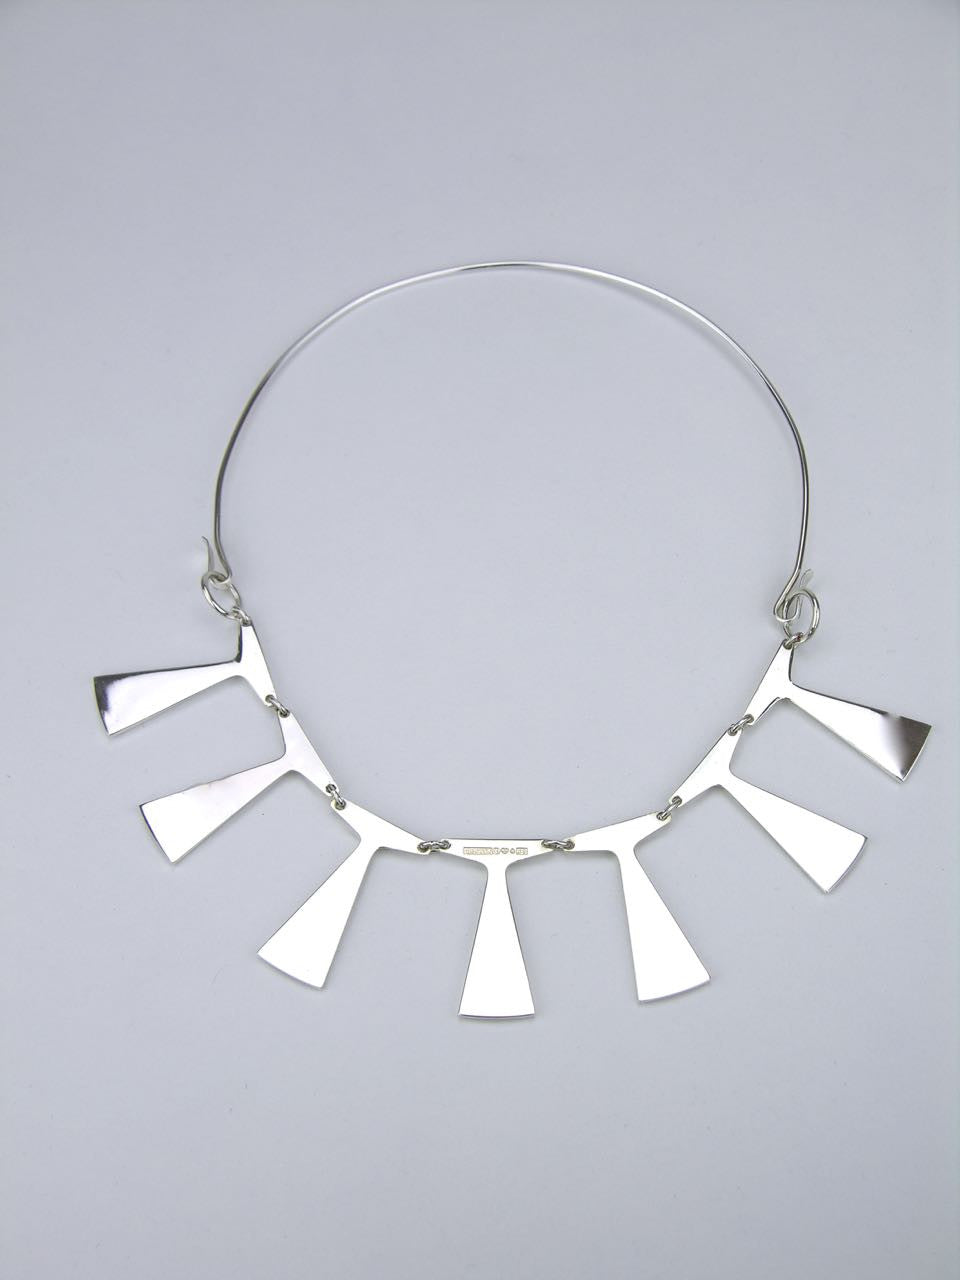 Gesons silver flared spike necklace - Sweden 1968